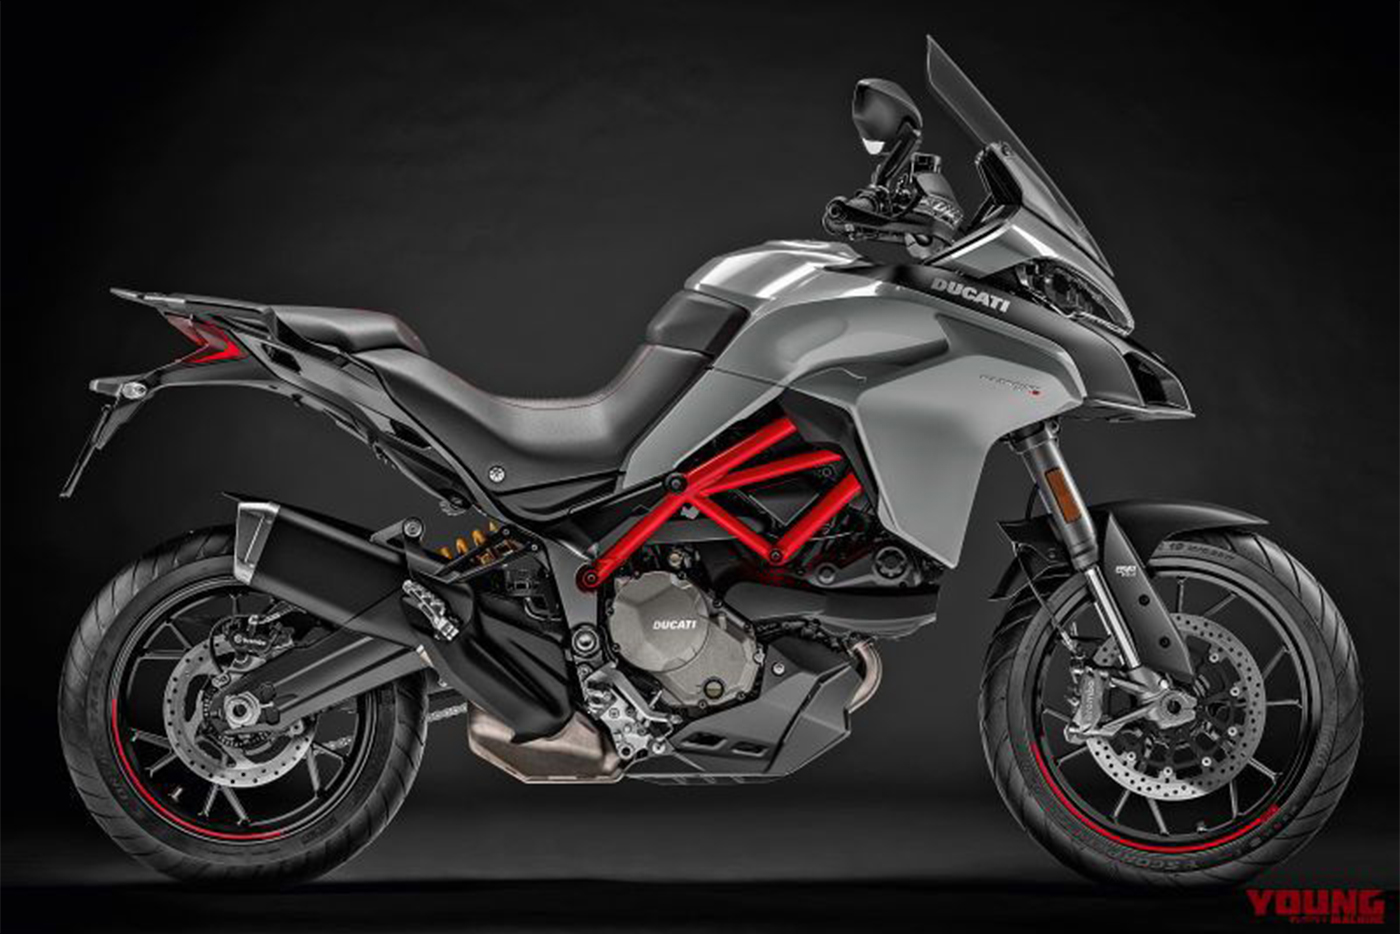 my19-multistrada-950-s-uc69966-high-800x535.jpg